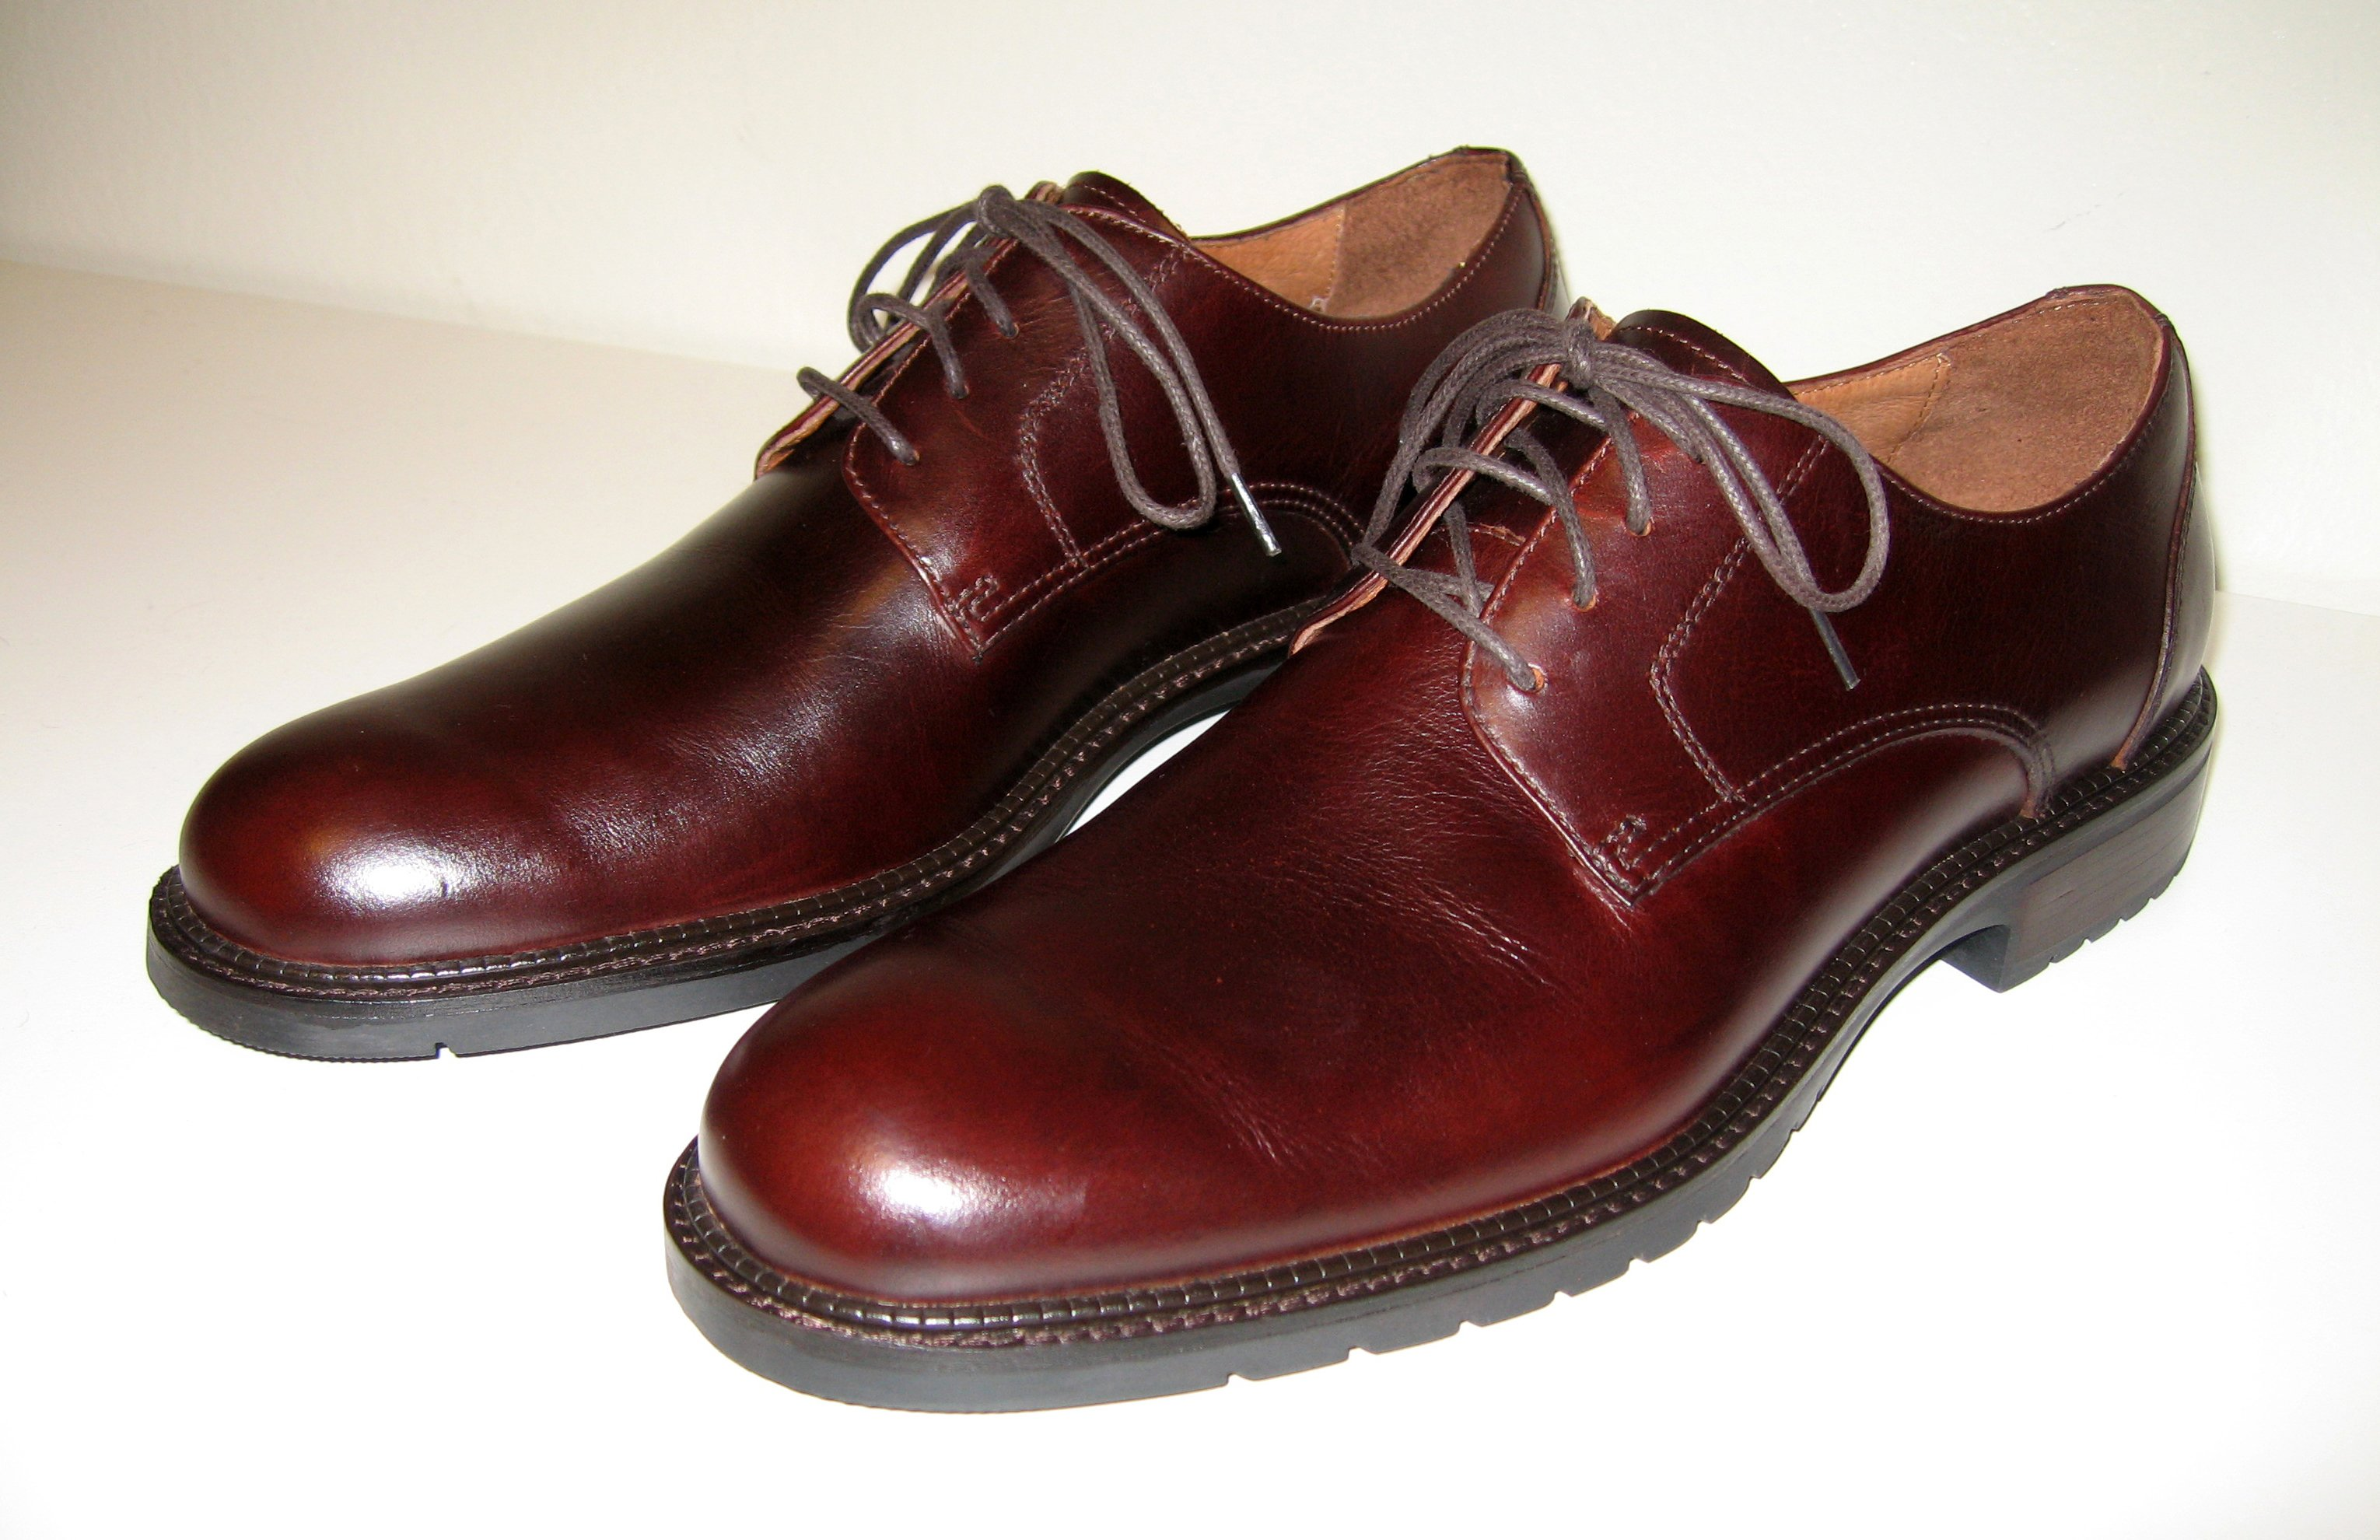 http://lounge.obviousmag.org/questionando_historias/2017/08/01/Mens_brown_derby_leather_shoes.jpg